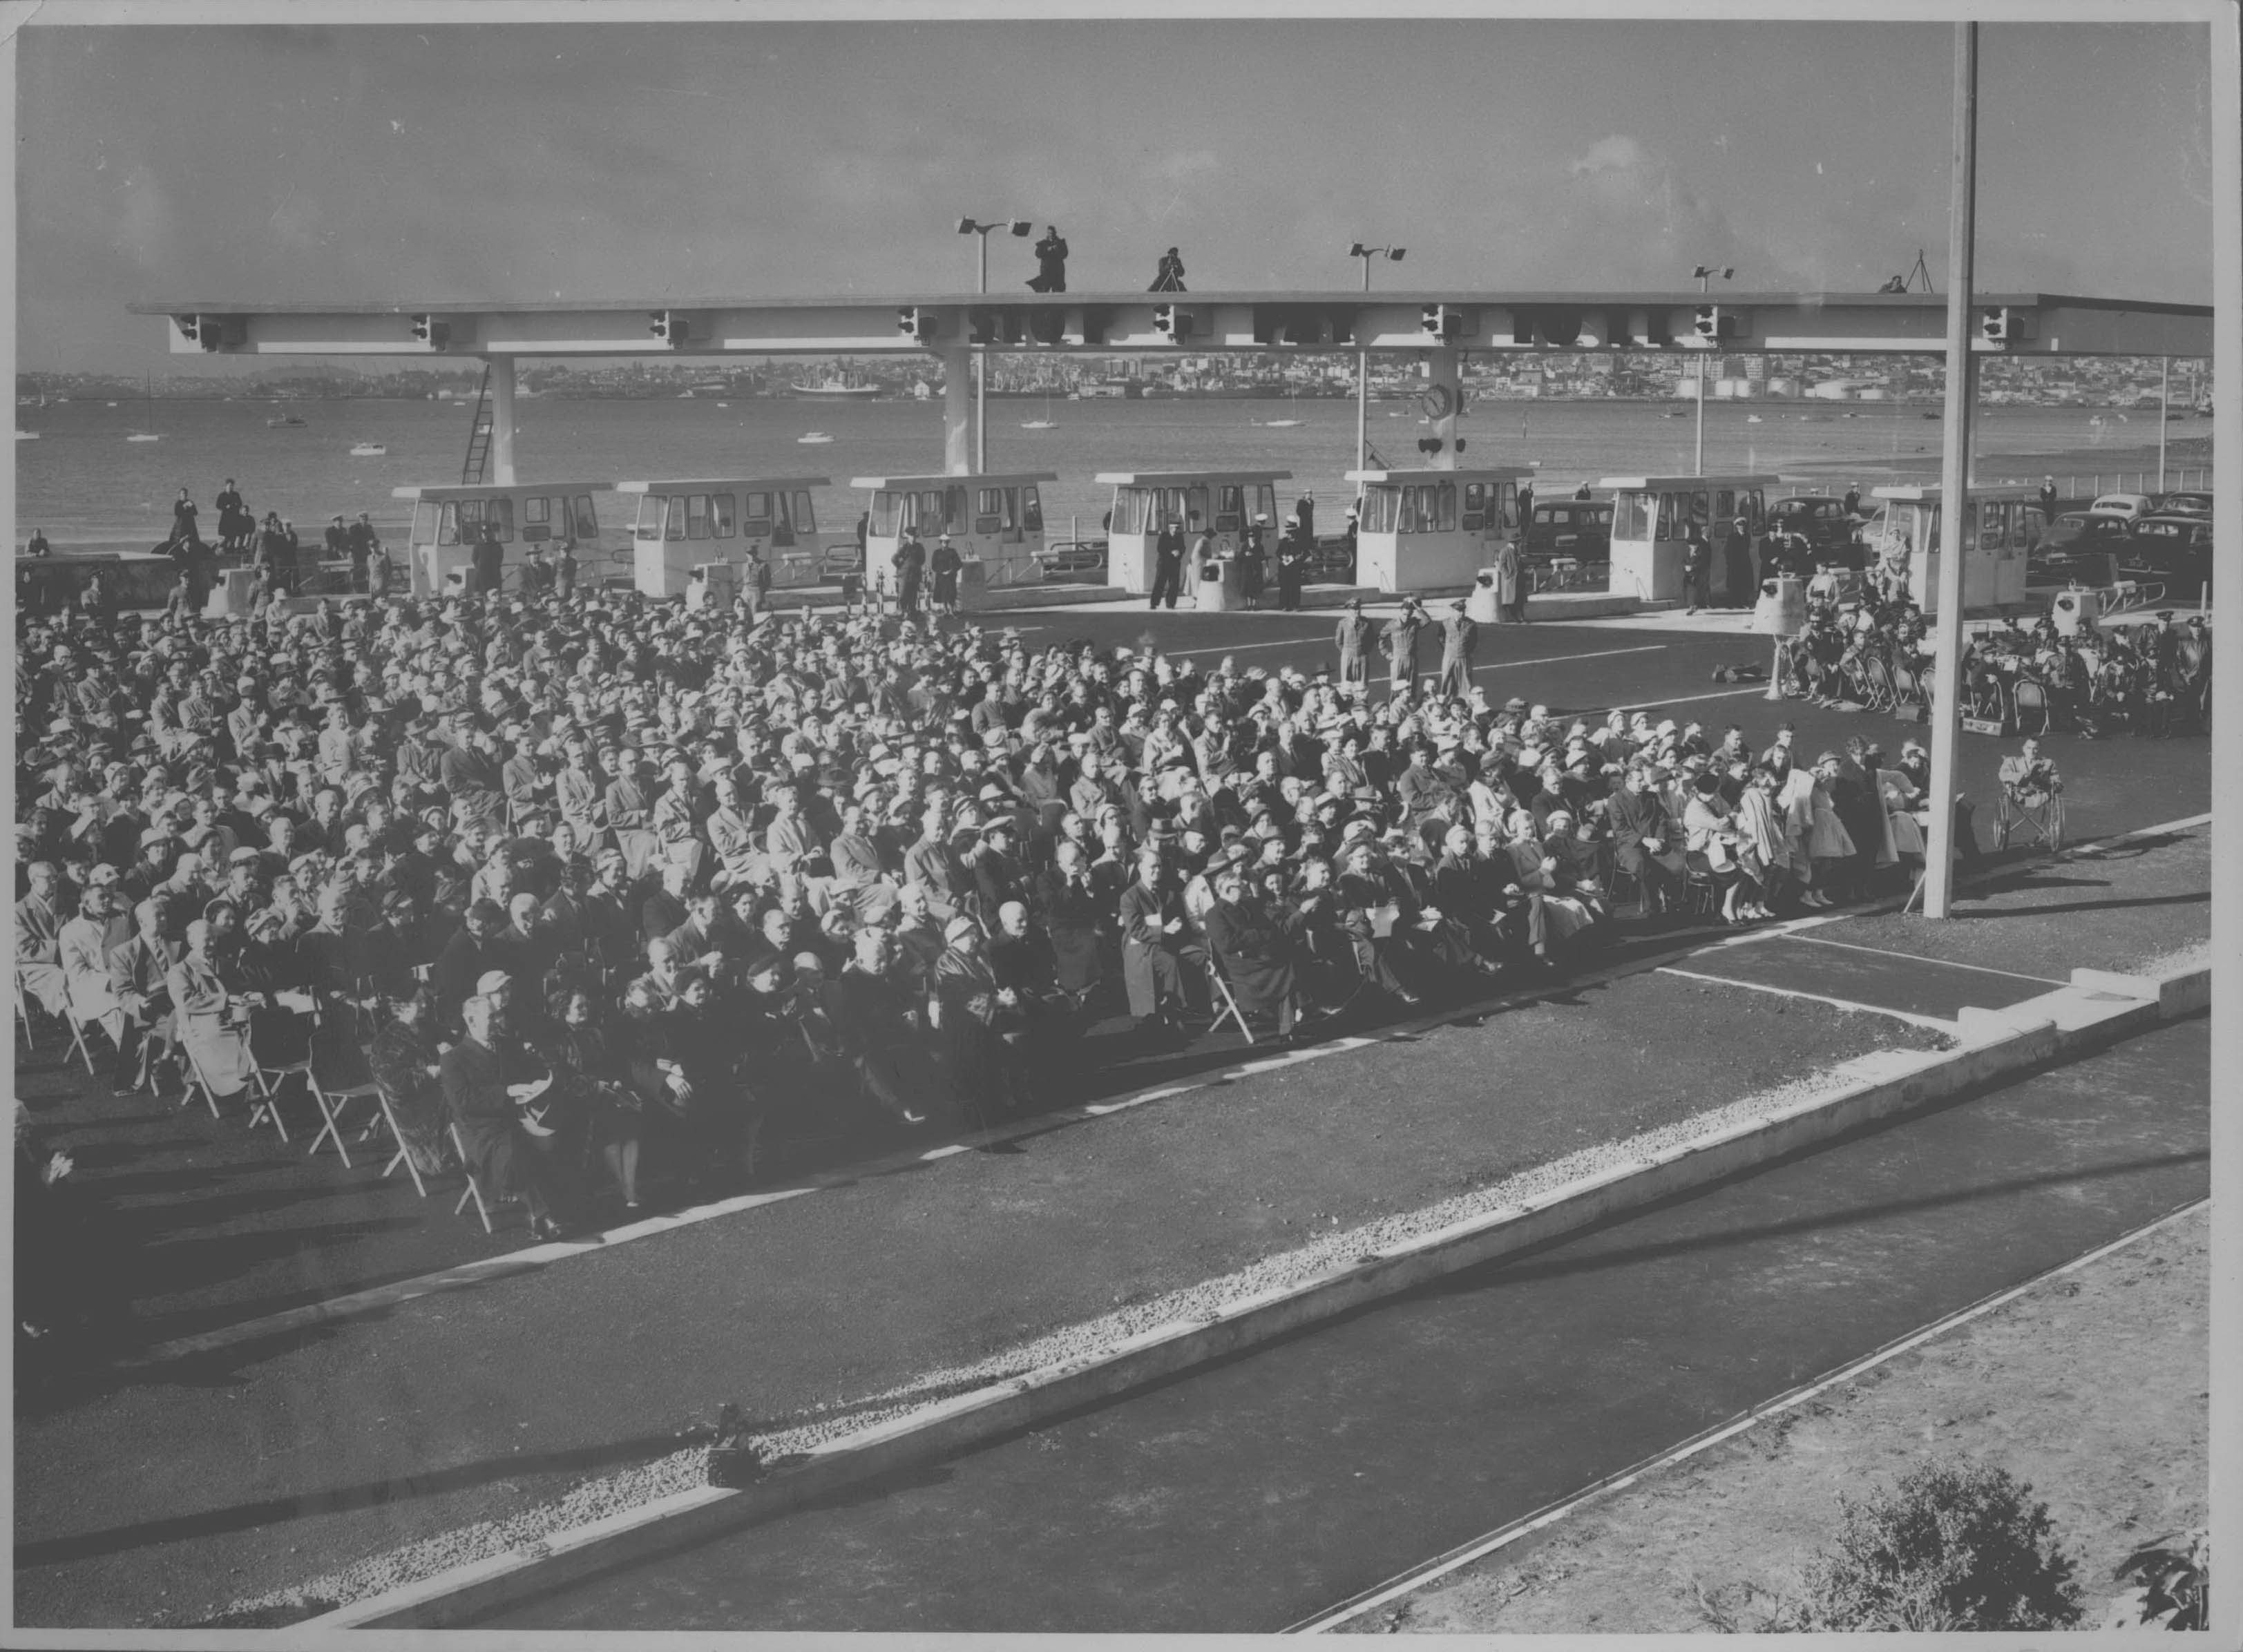 Showing the crowd who are seated at the official Bridge opening